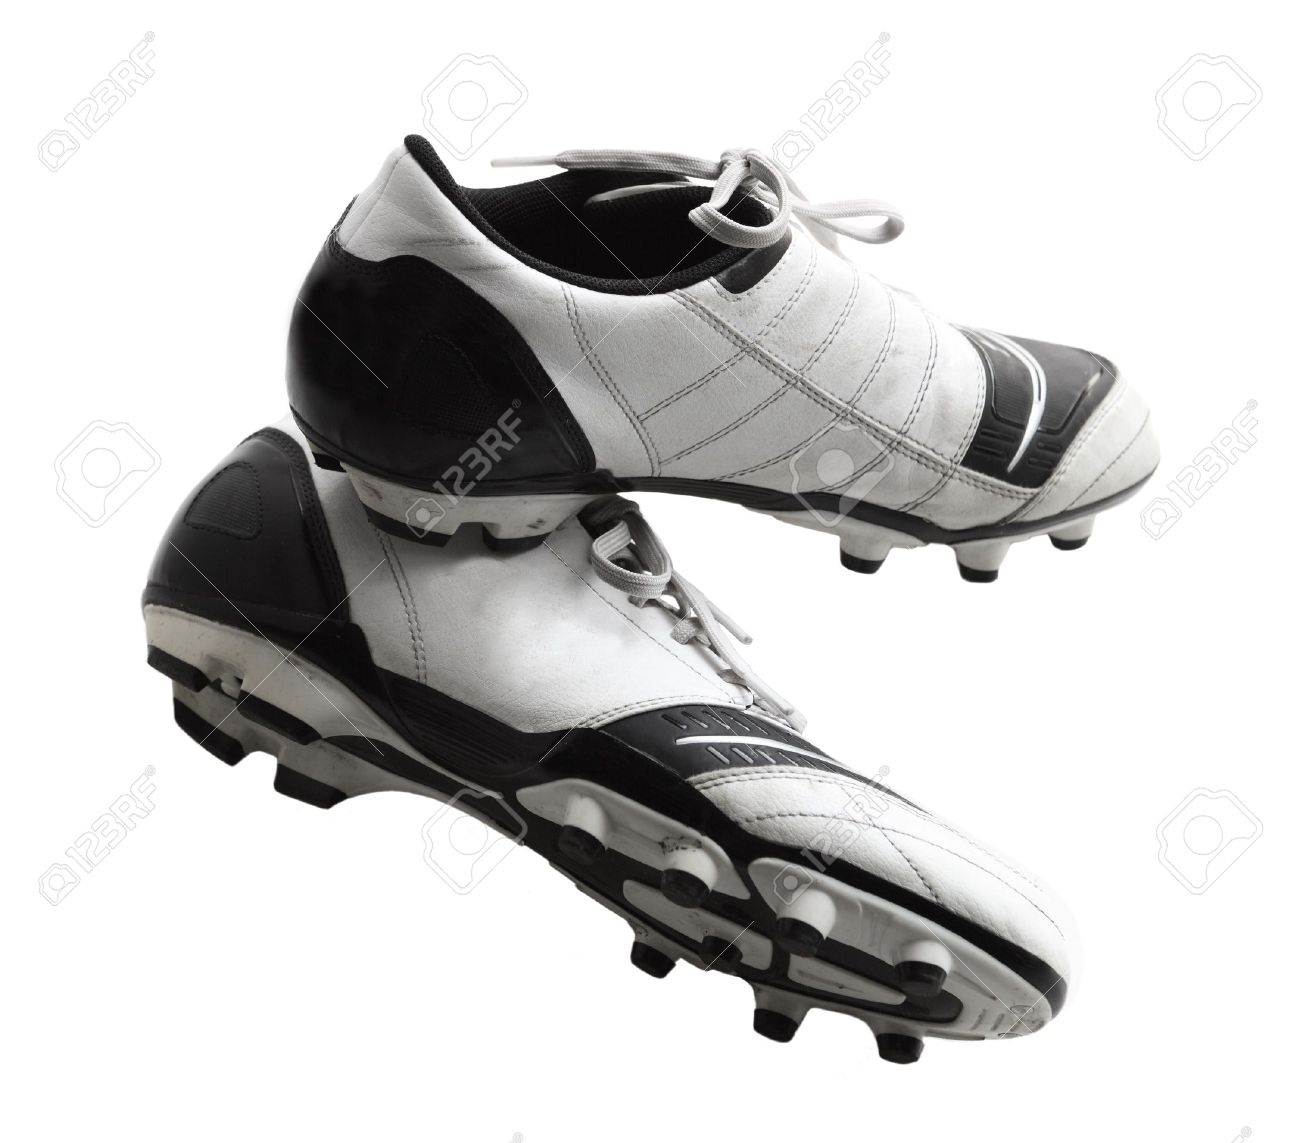 Old Soccer Shoes, Football Boots